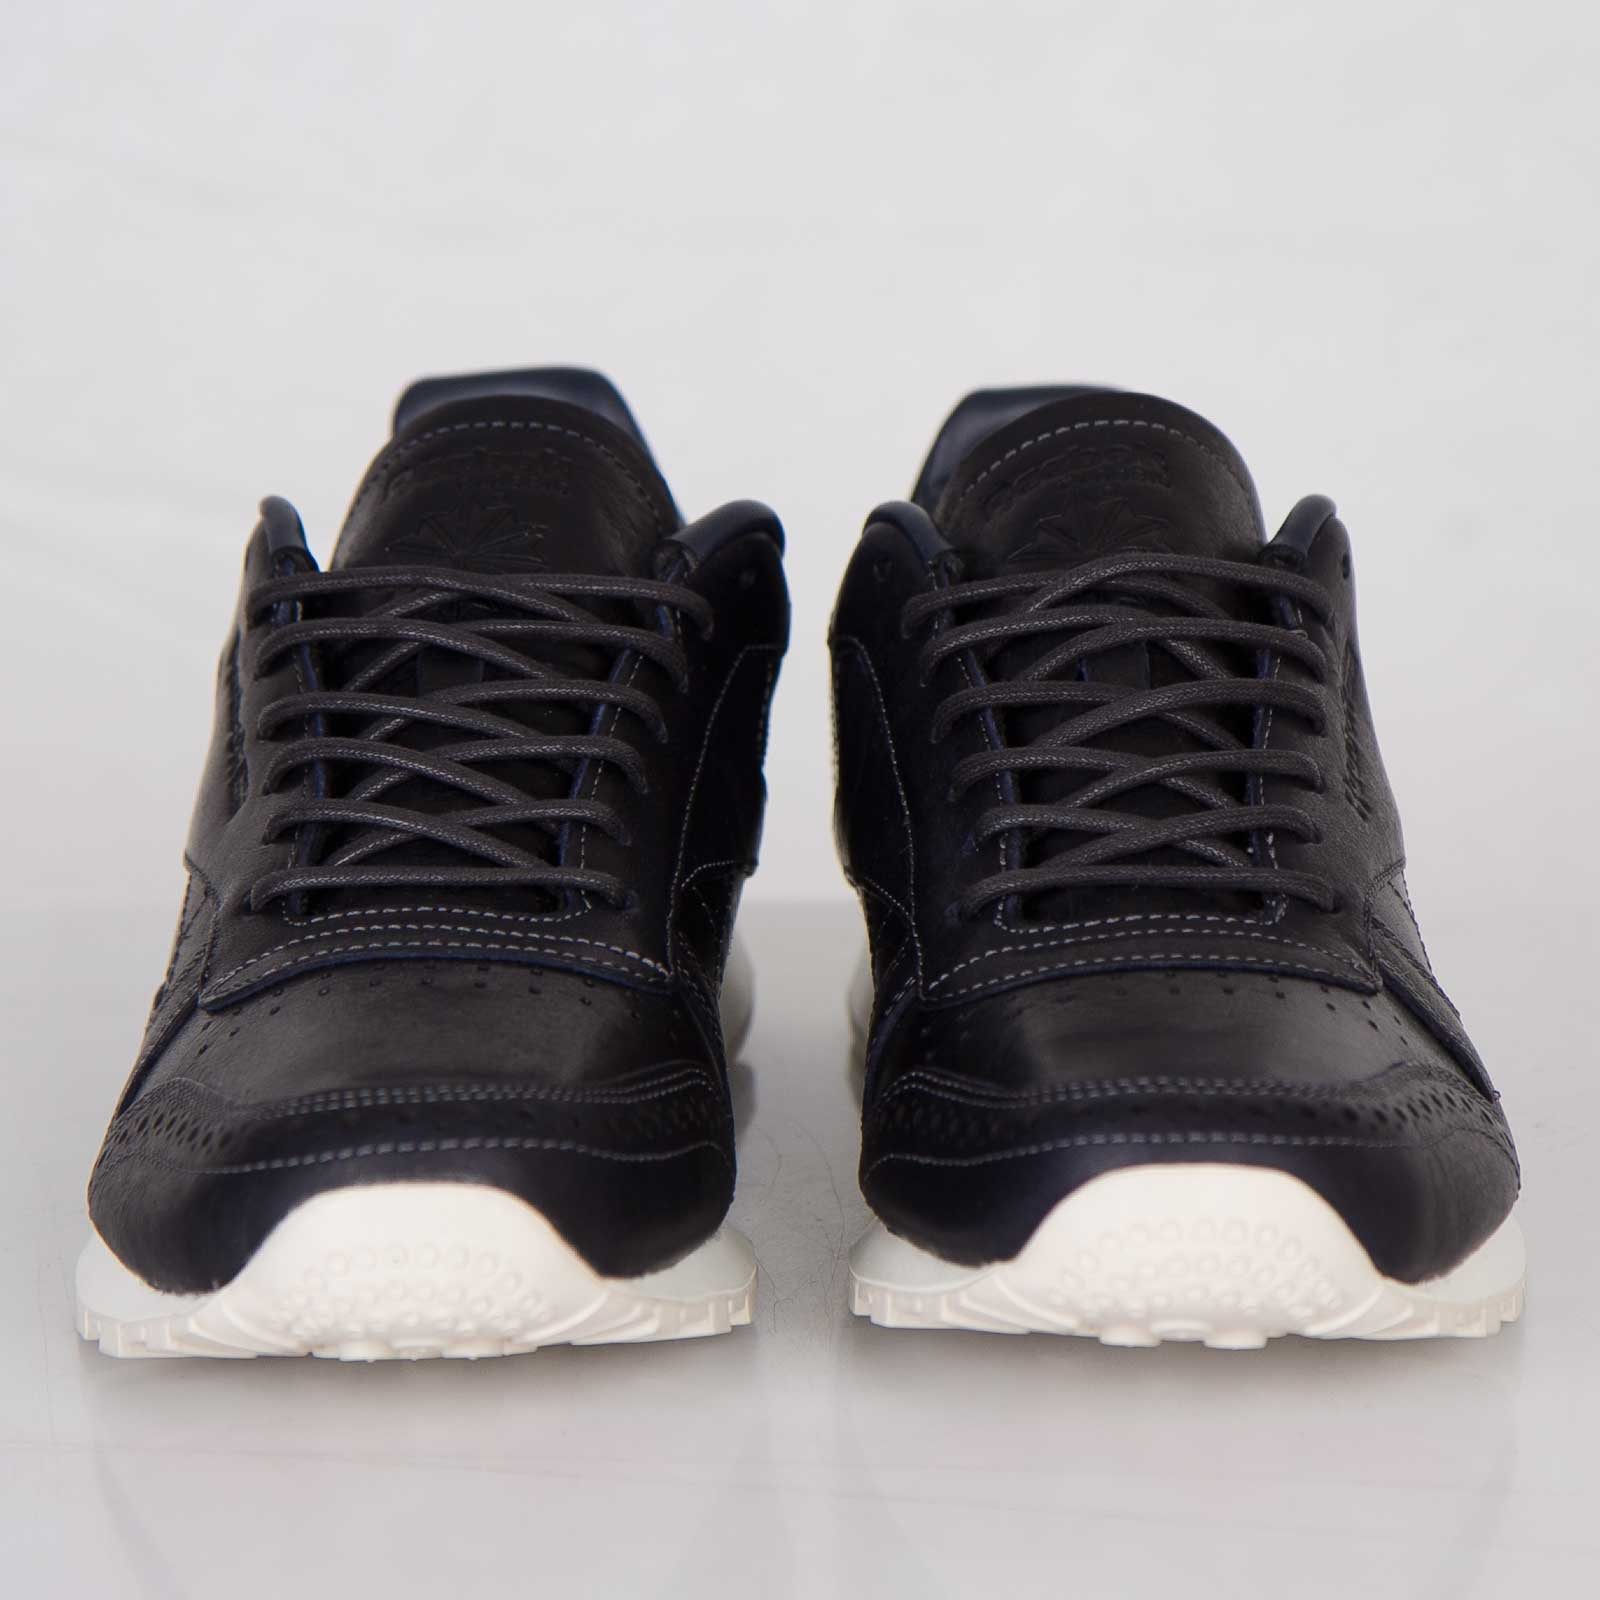 38d0d56cbcdf5 ... Reebok Classic Leather Lux CF Stead Reebok Classic Leather Lux CF Stead  .